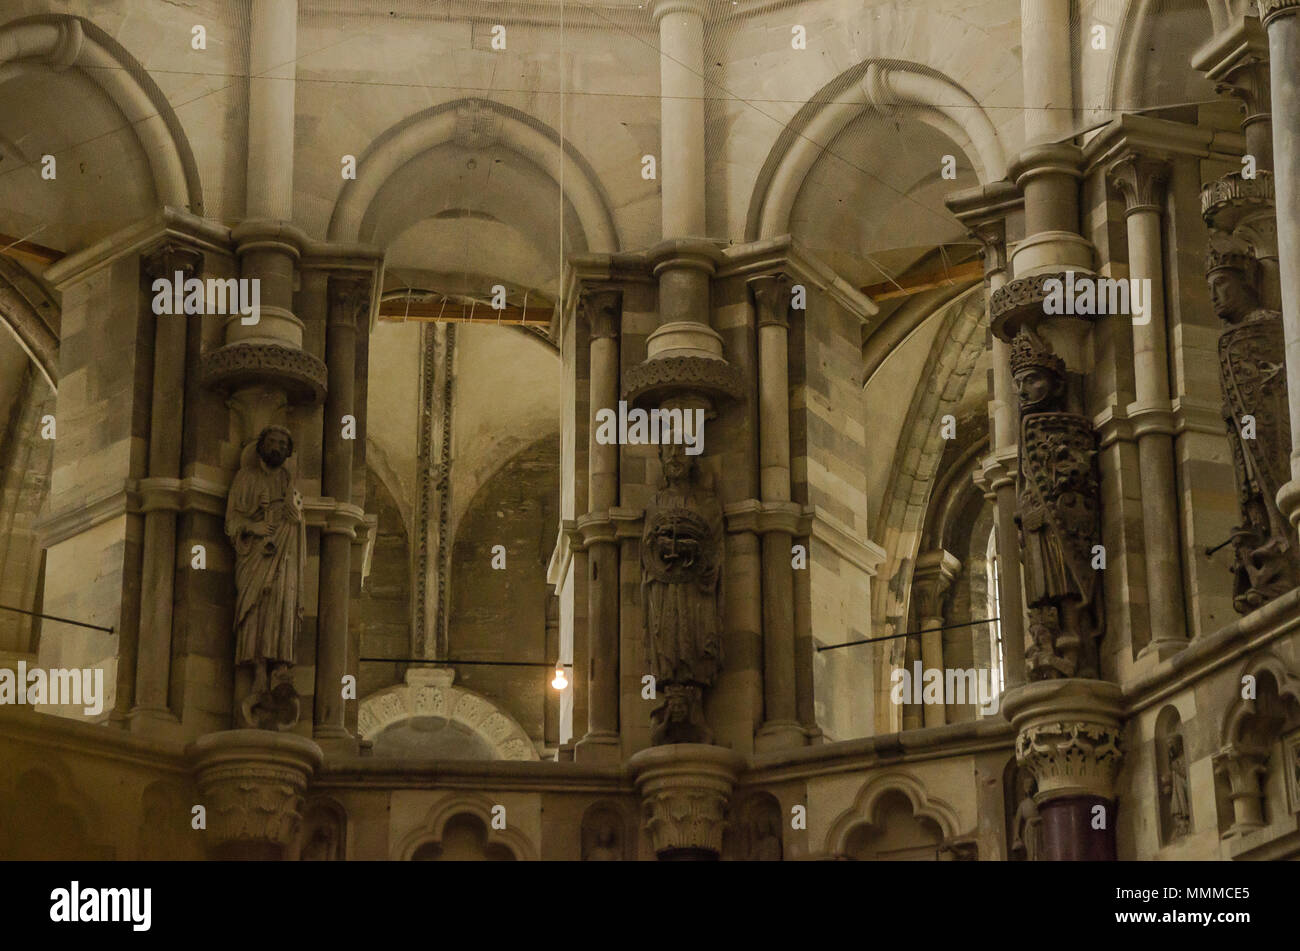 Magdeburg Cathedral, officially called the Cathedral of Saints Catherine and Maurice, a Protestant cathedral, the oldest Gothic cathedral in Germany. - Stock Image